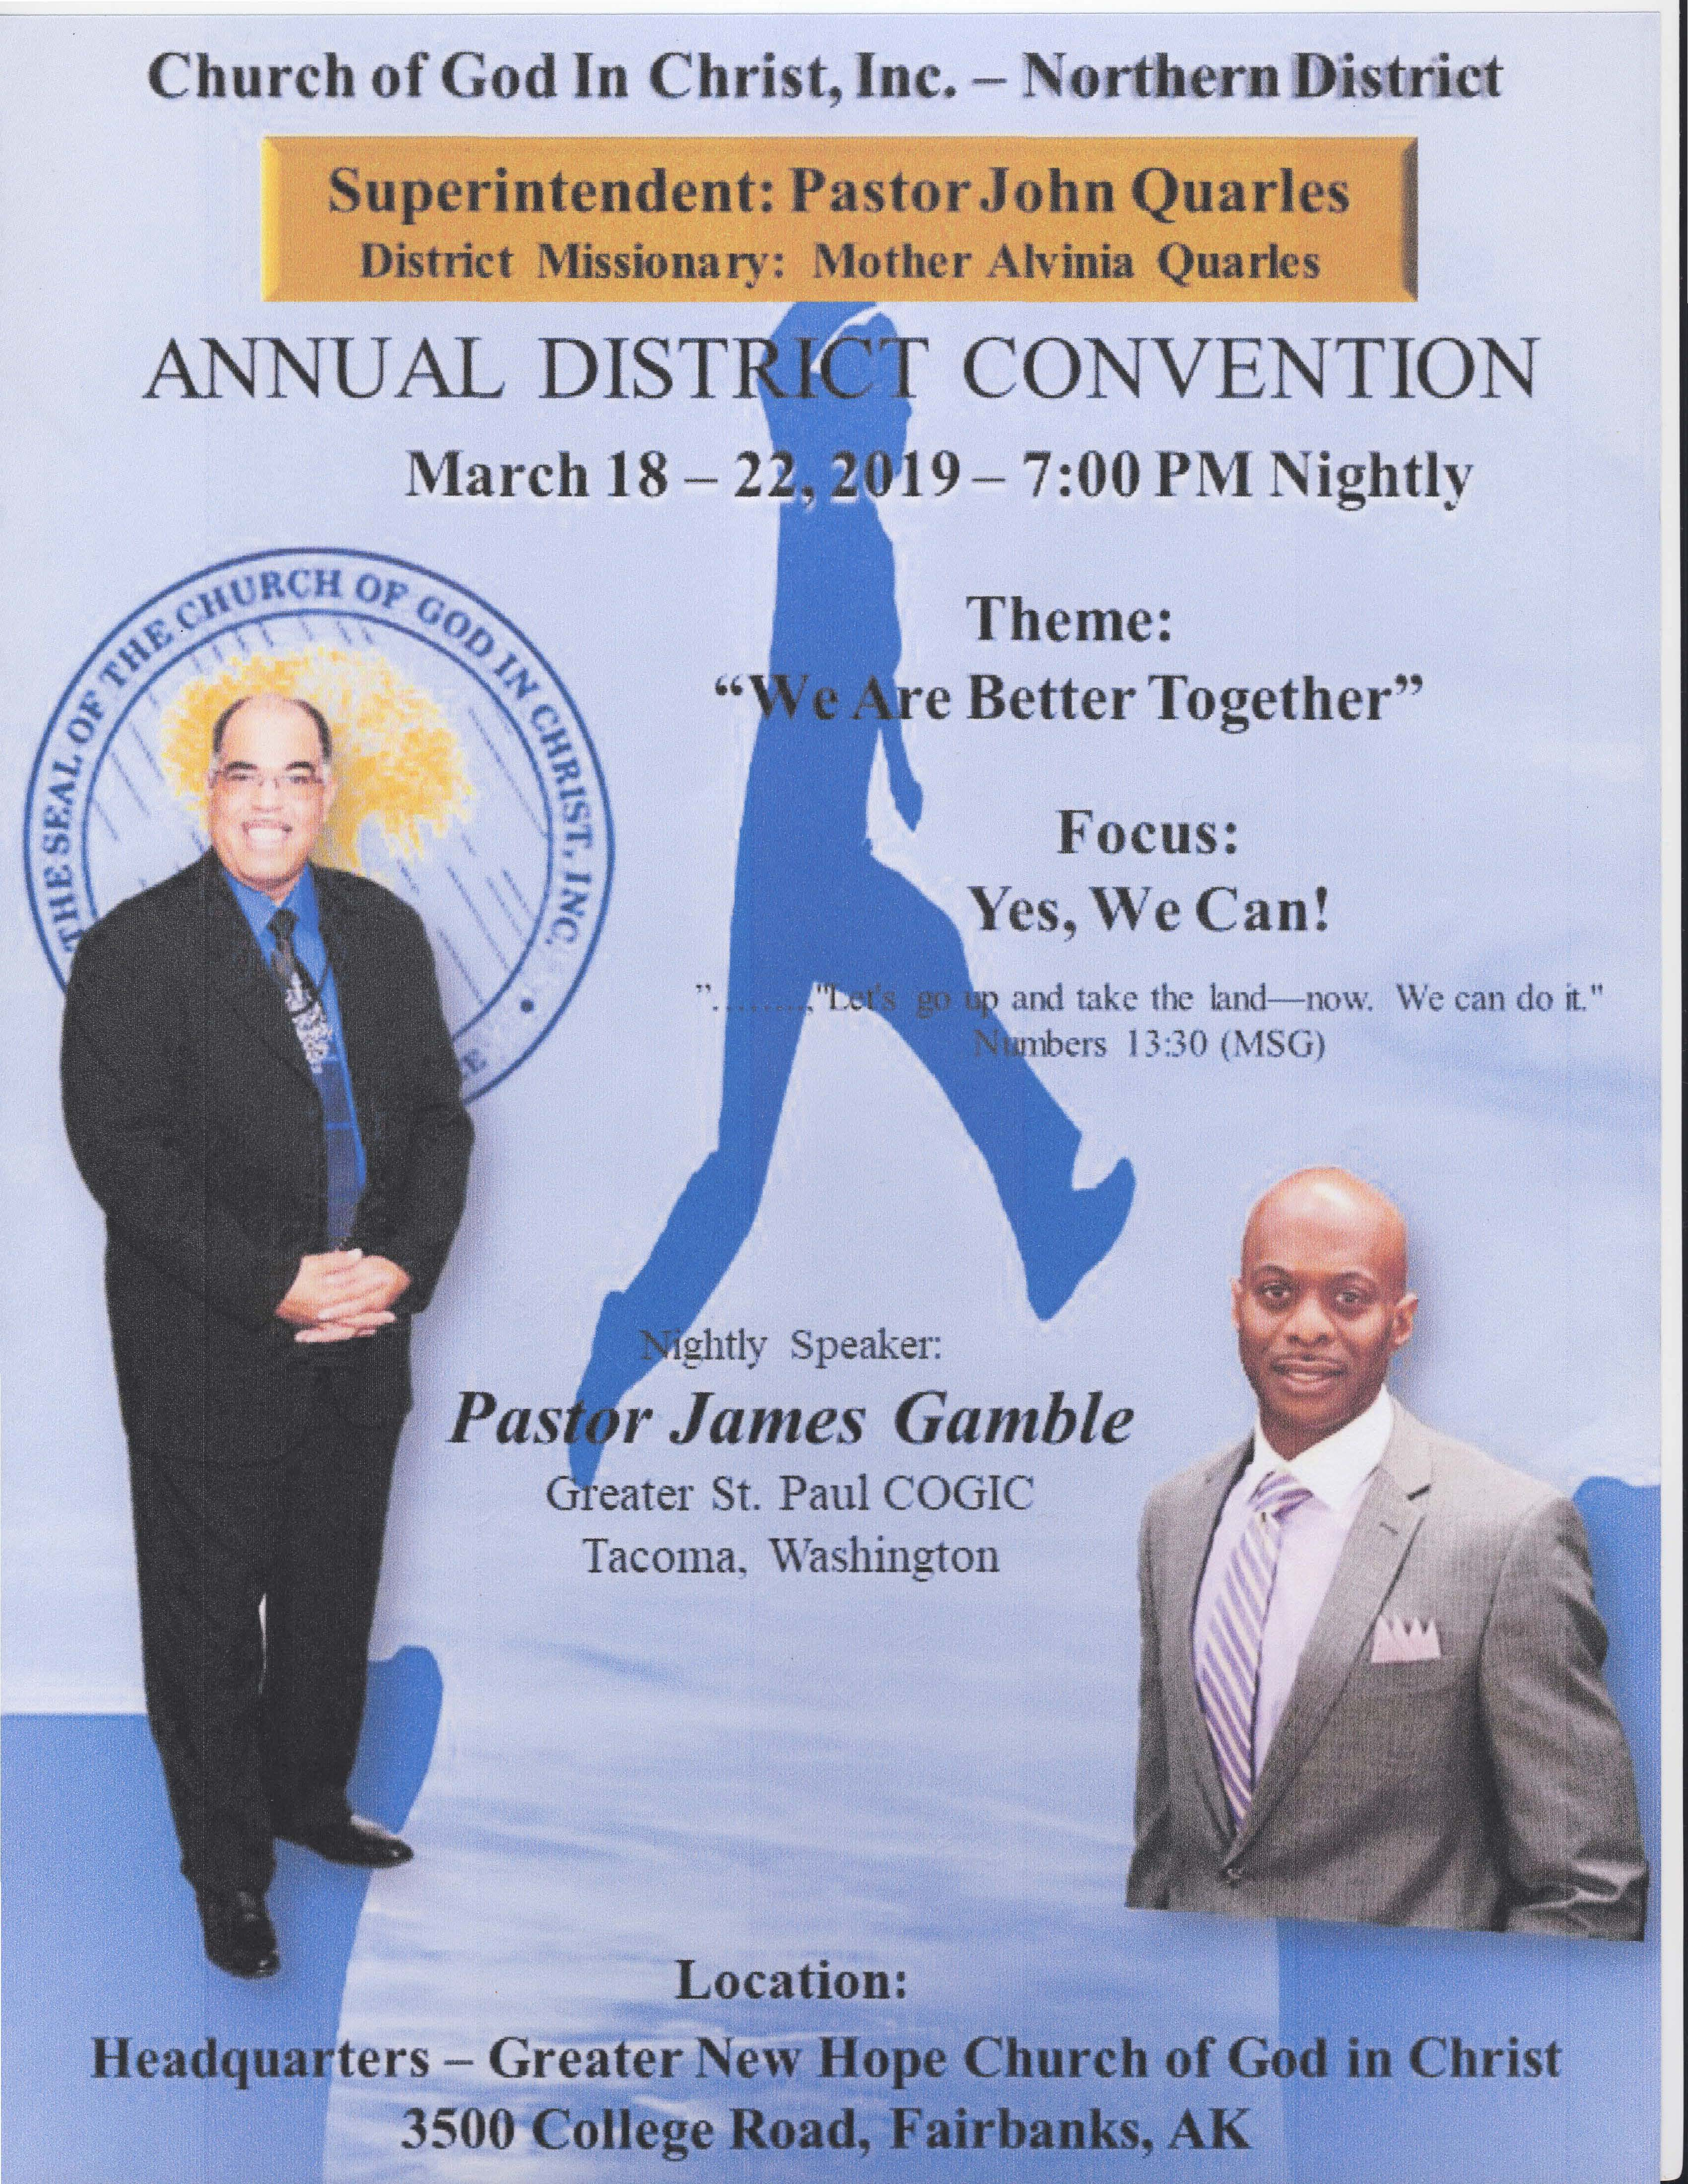 Northern District Convention (7:30pm, nightly) – New Jerusalem COGIC